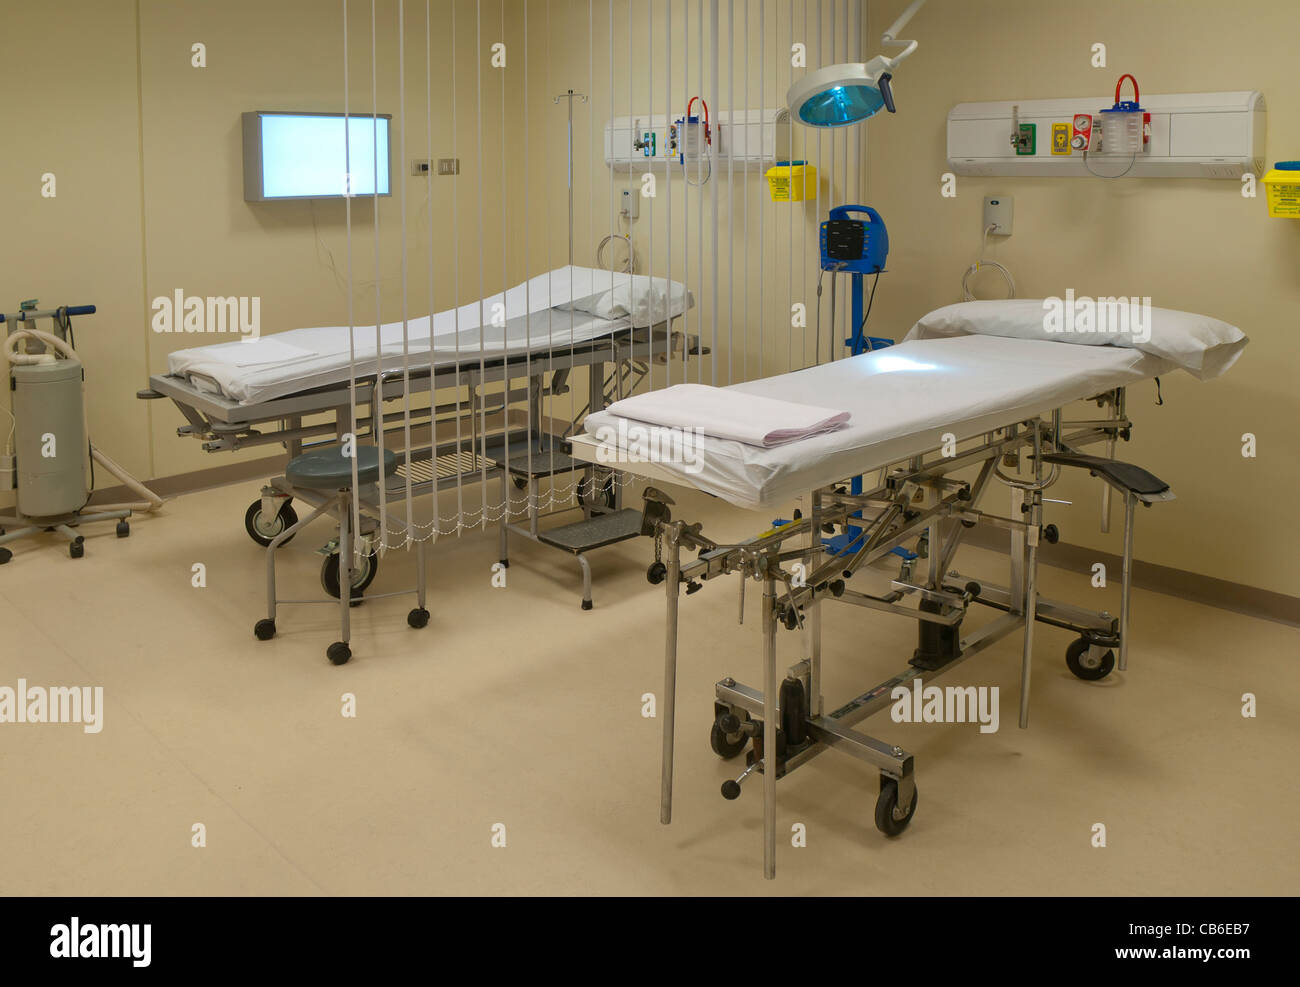 room primary care hospital - Stock Image